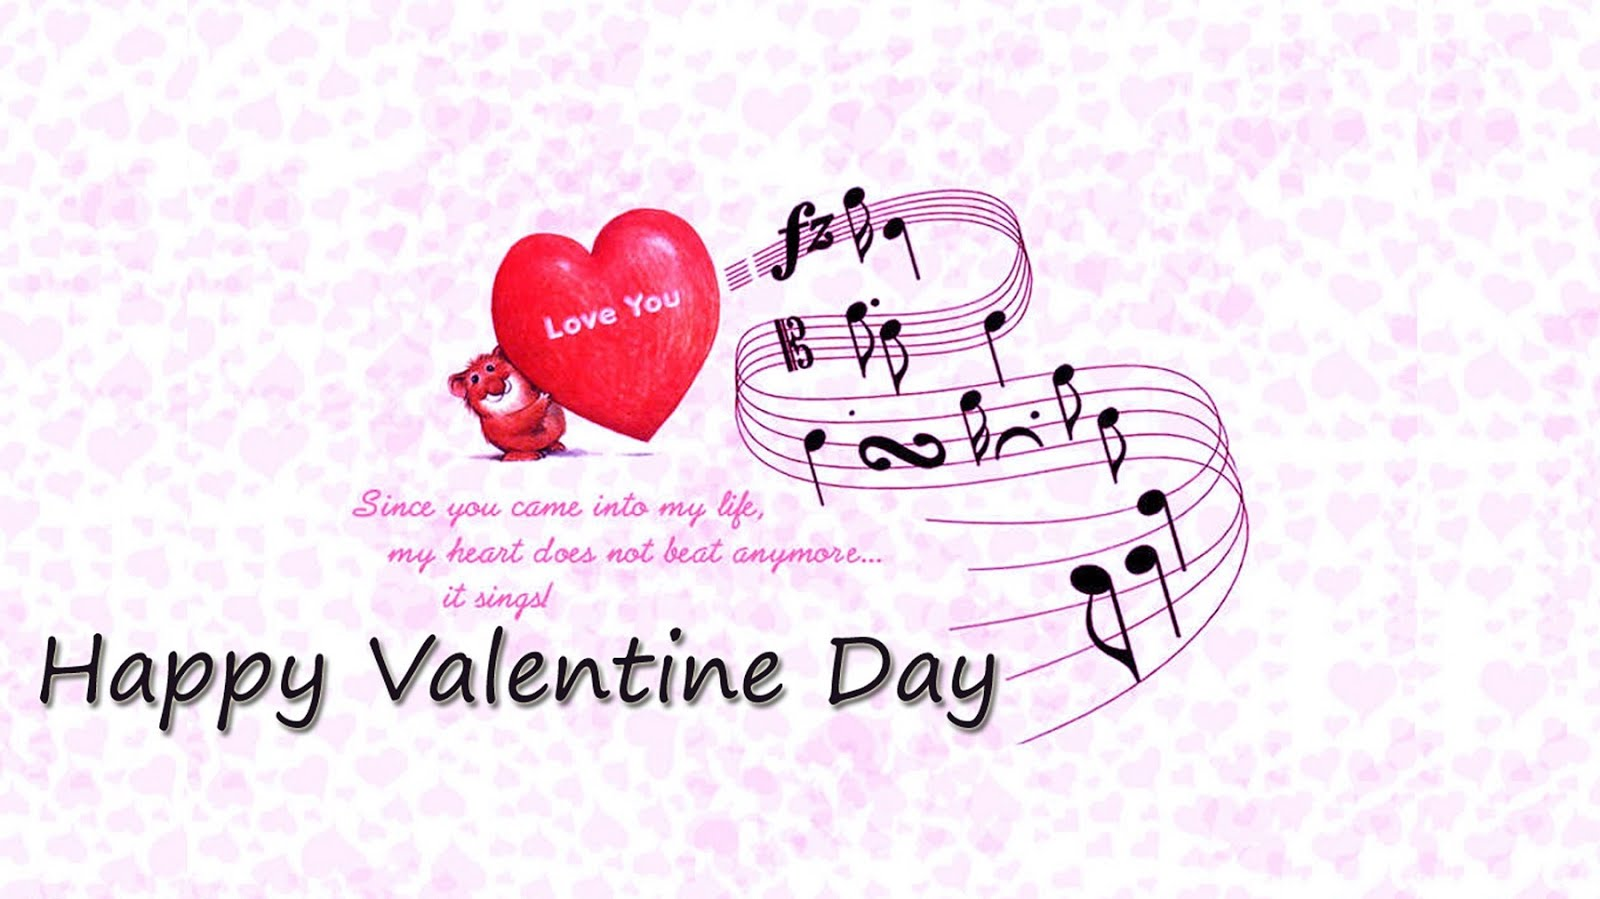 happy valentines day poems for husband - Husband Valentines Day